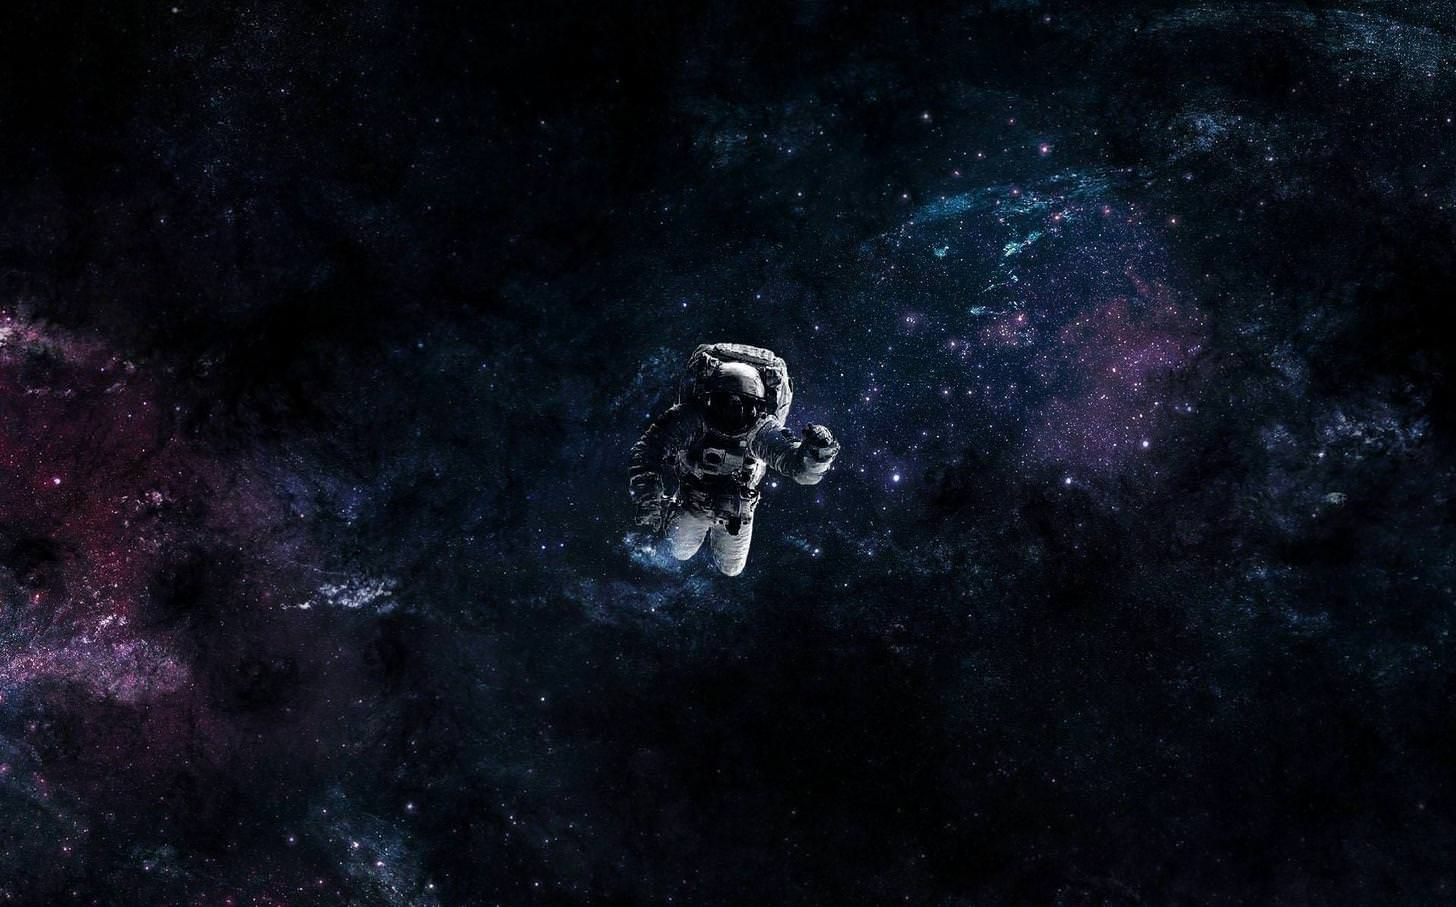 Astronaut Floating In Space Astronaut Wallpaper Astronauts In Space Desktop Wallpaper